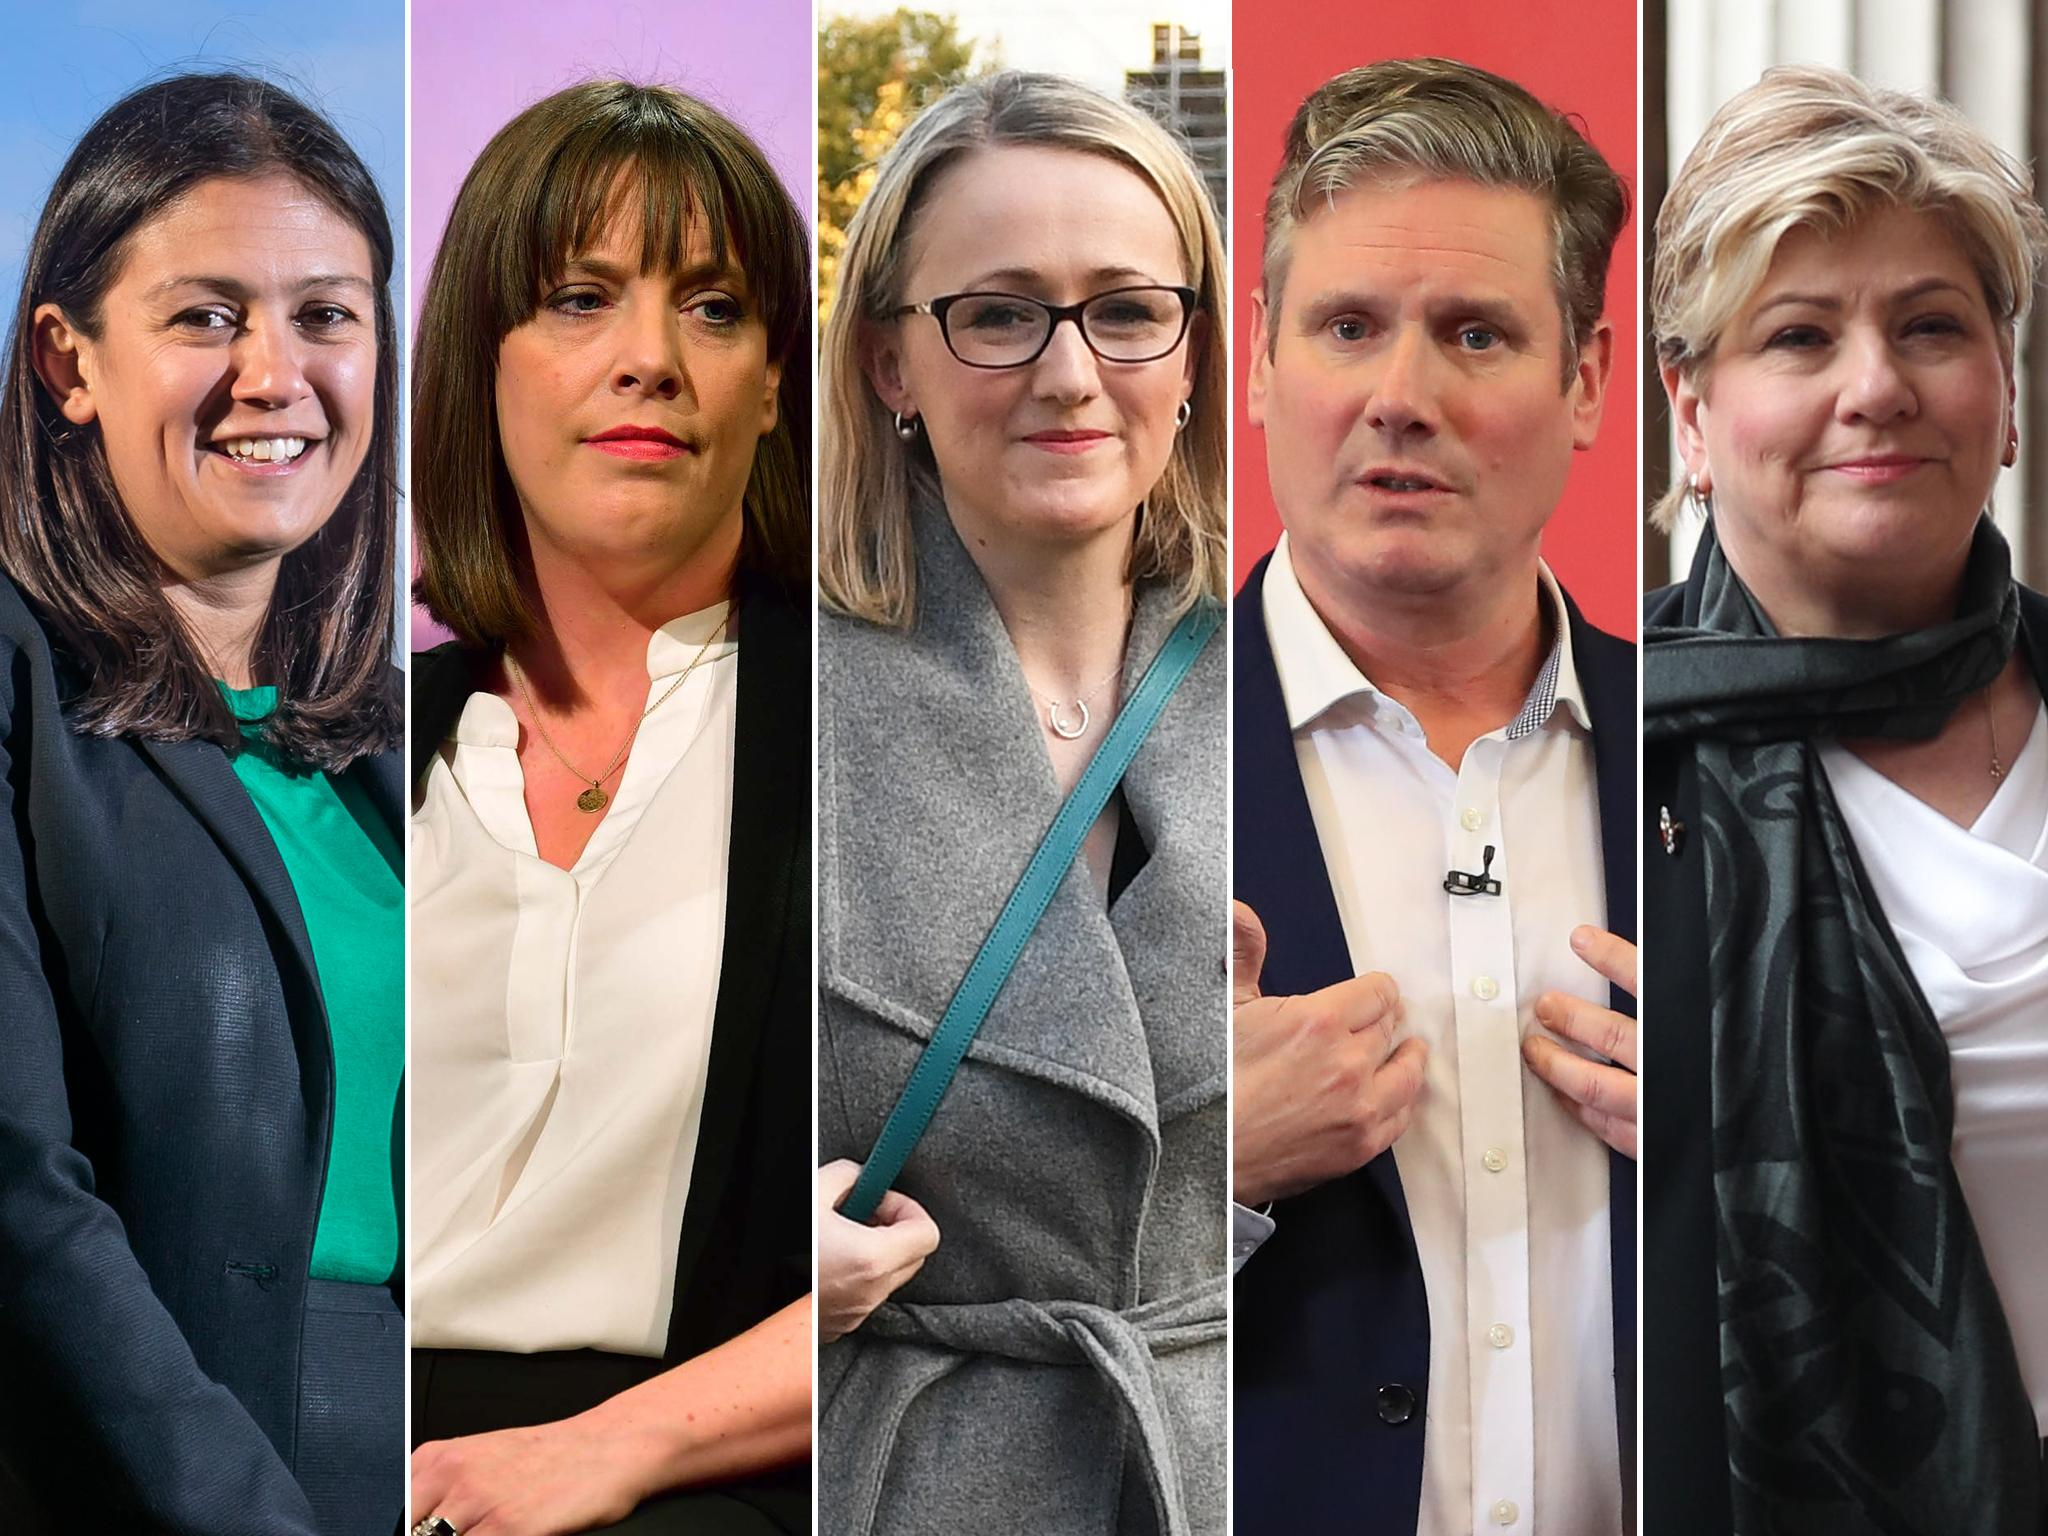 'Once in a lifetime opportunity': Why people are joining Labour's ranks to vote in the leadership contest